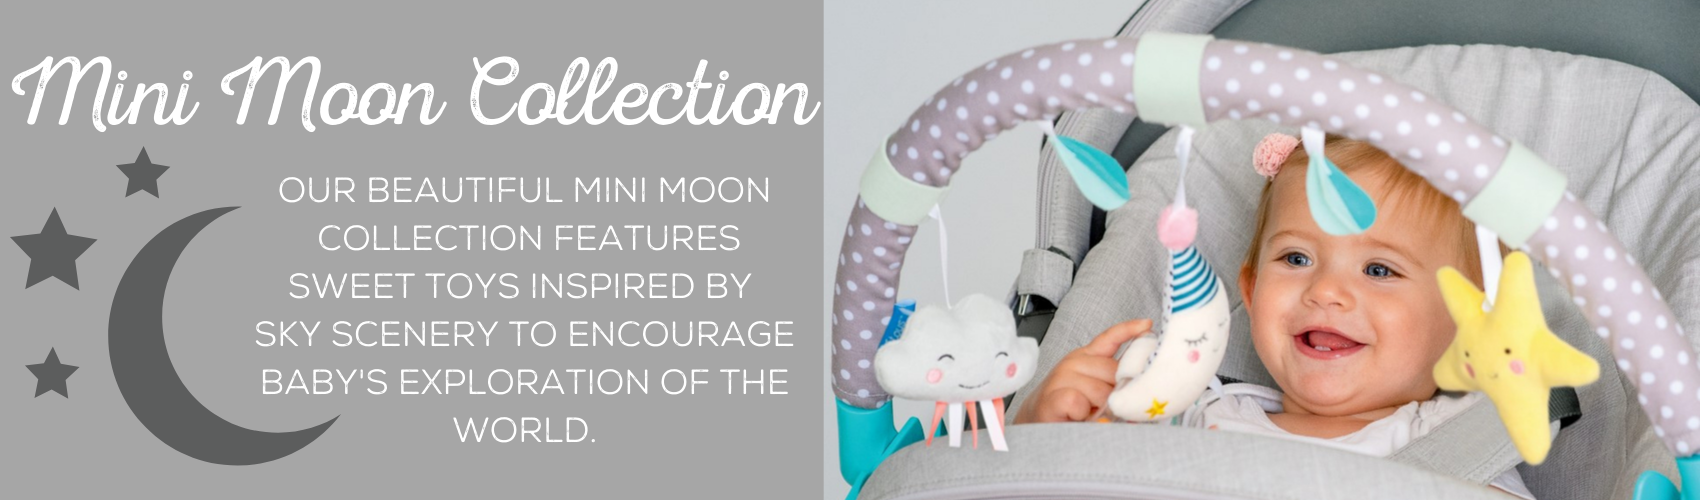 taf toy mini moon collection